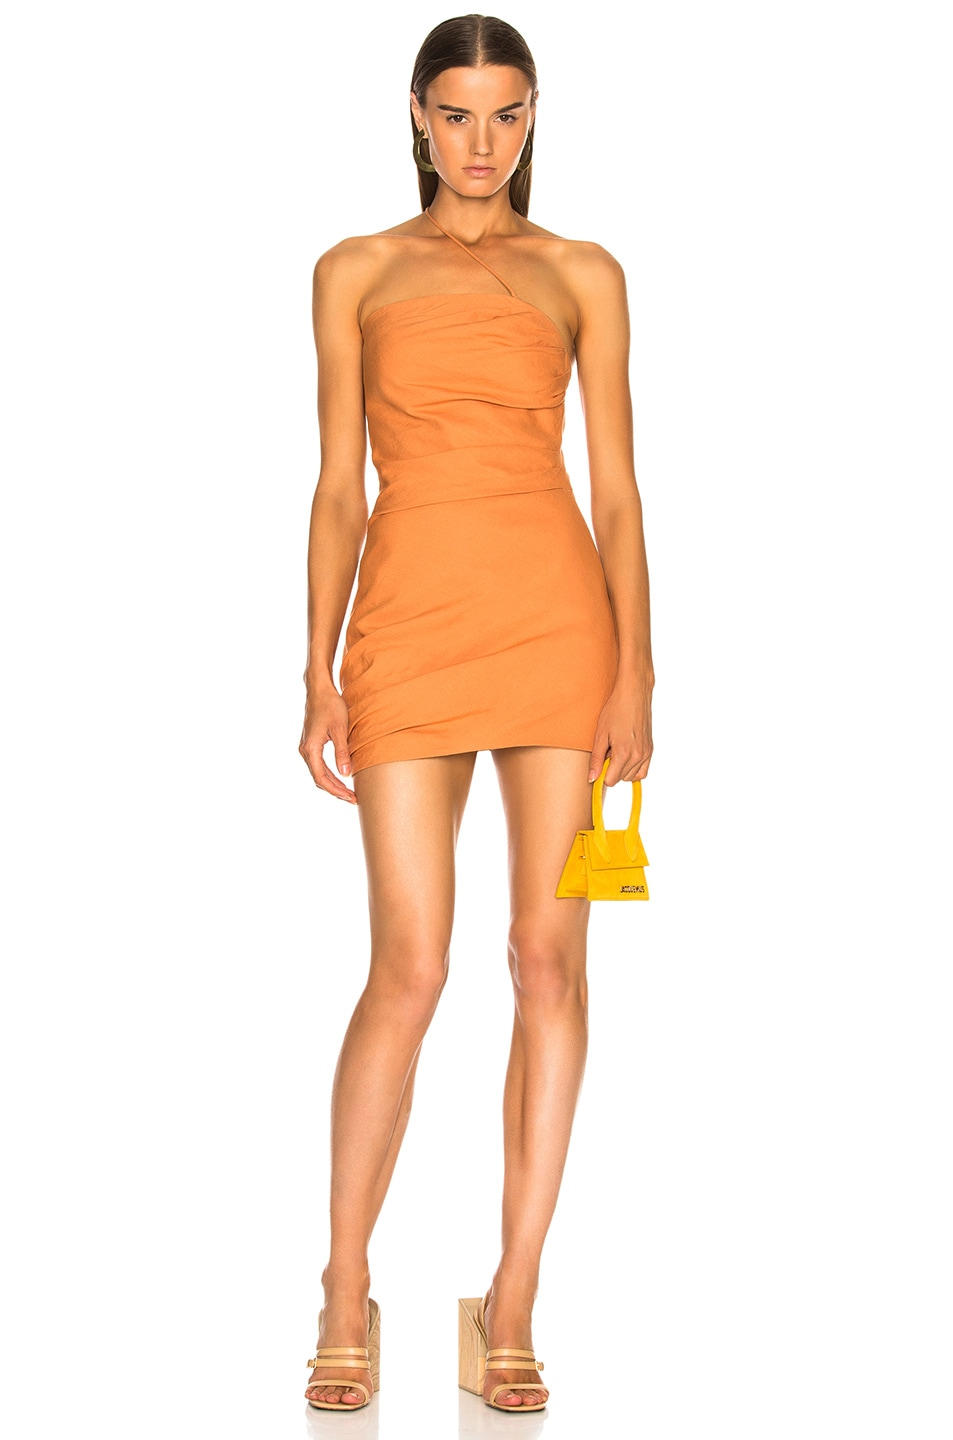 6a6a7638a2e5 Image 1 of JACQUEMUS Brella Dress in Orange